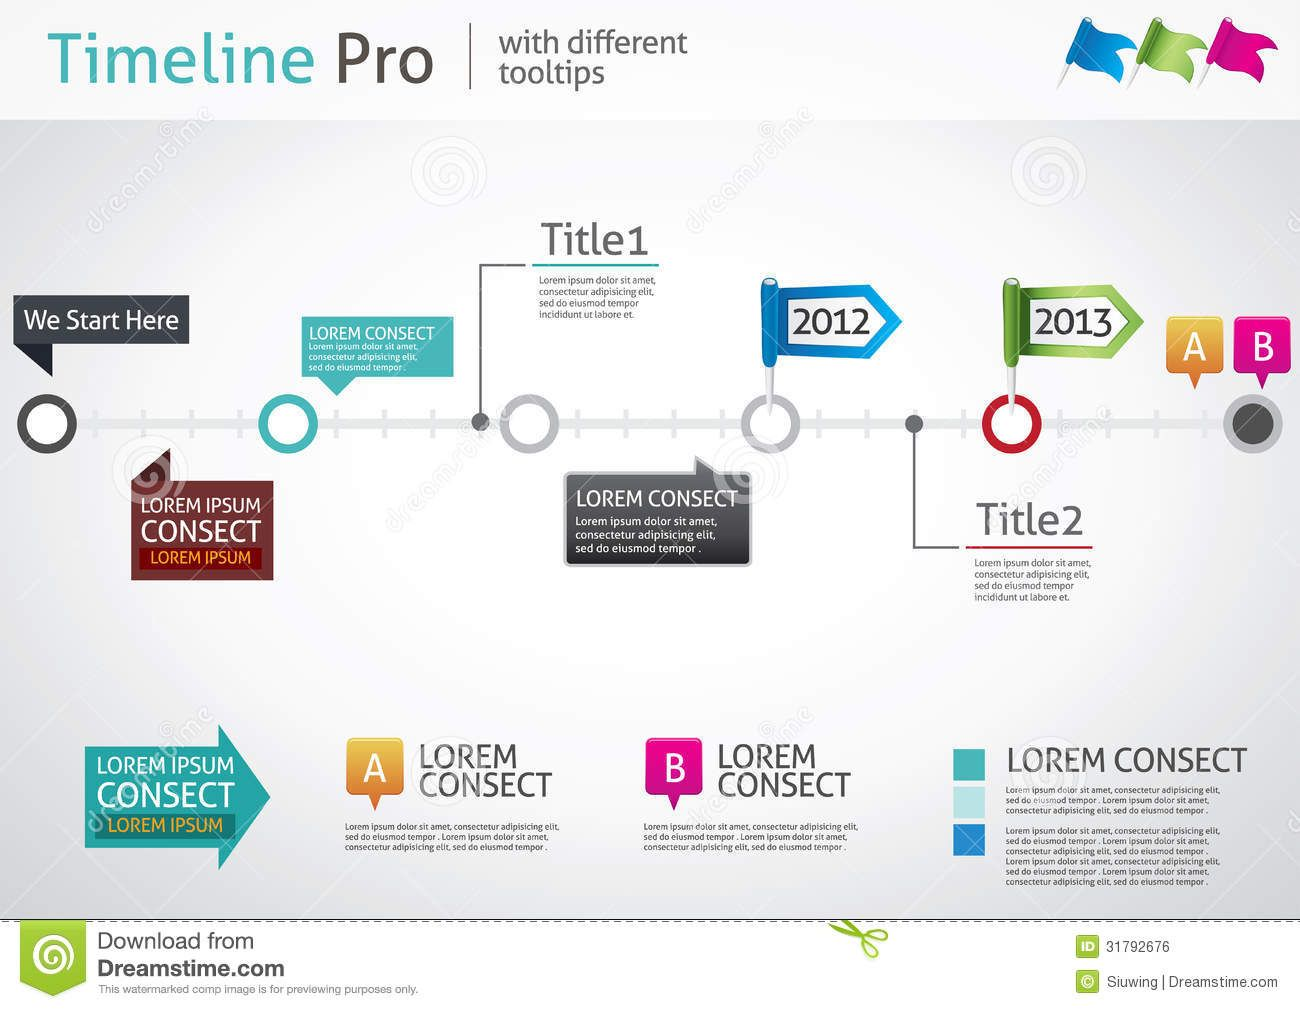 Timeline Pro - Different Tooltips Royalty Free Stock Image - Image ...